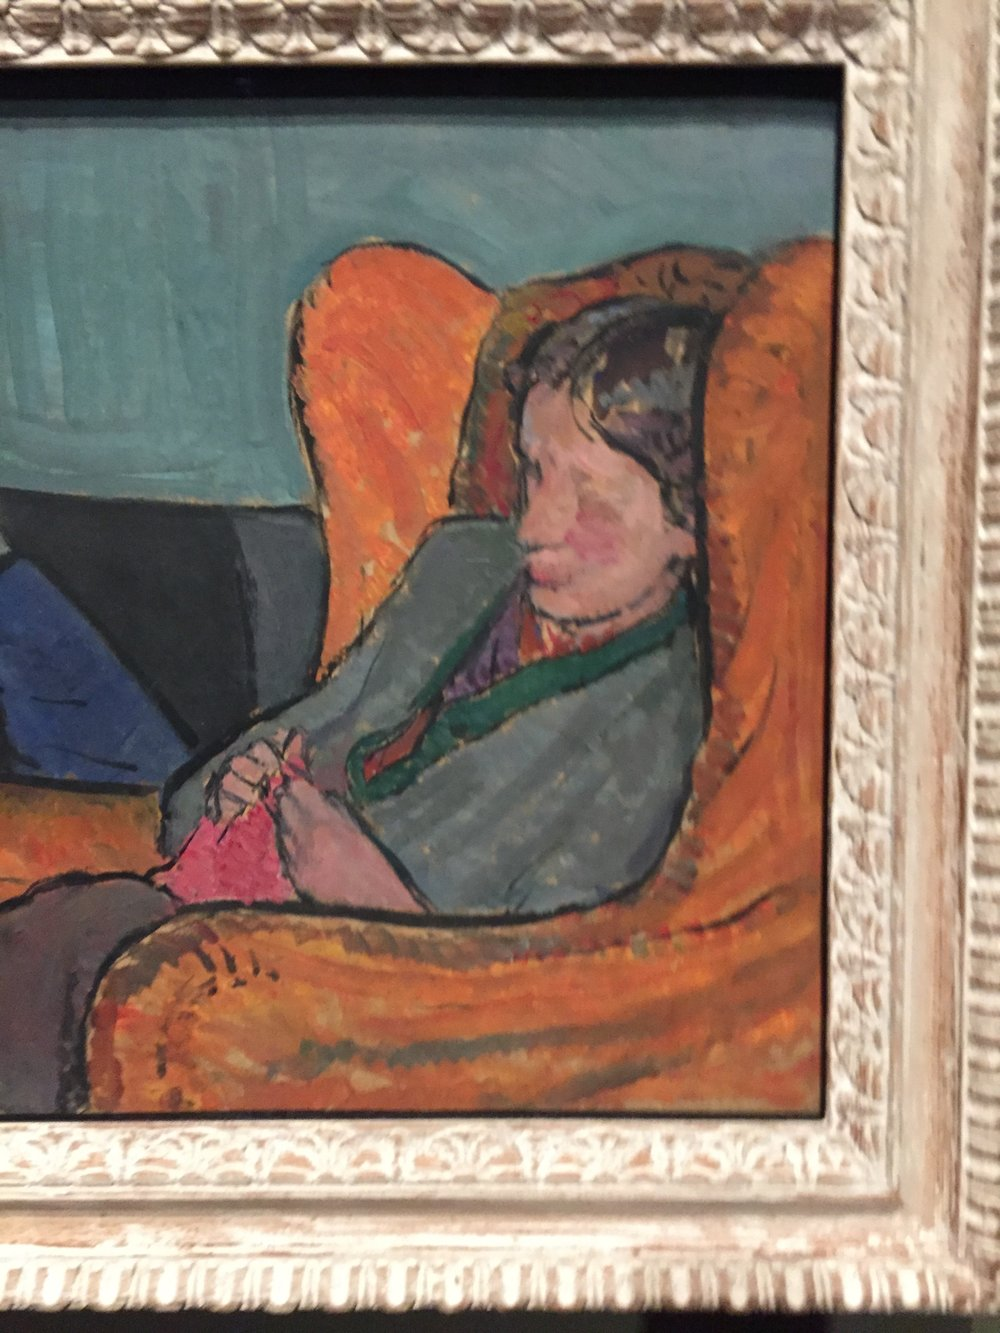 Virginia Woolfe painted by her sister Vanessa Bell